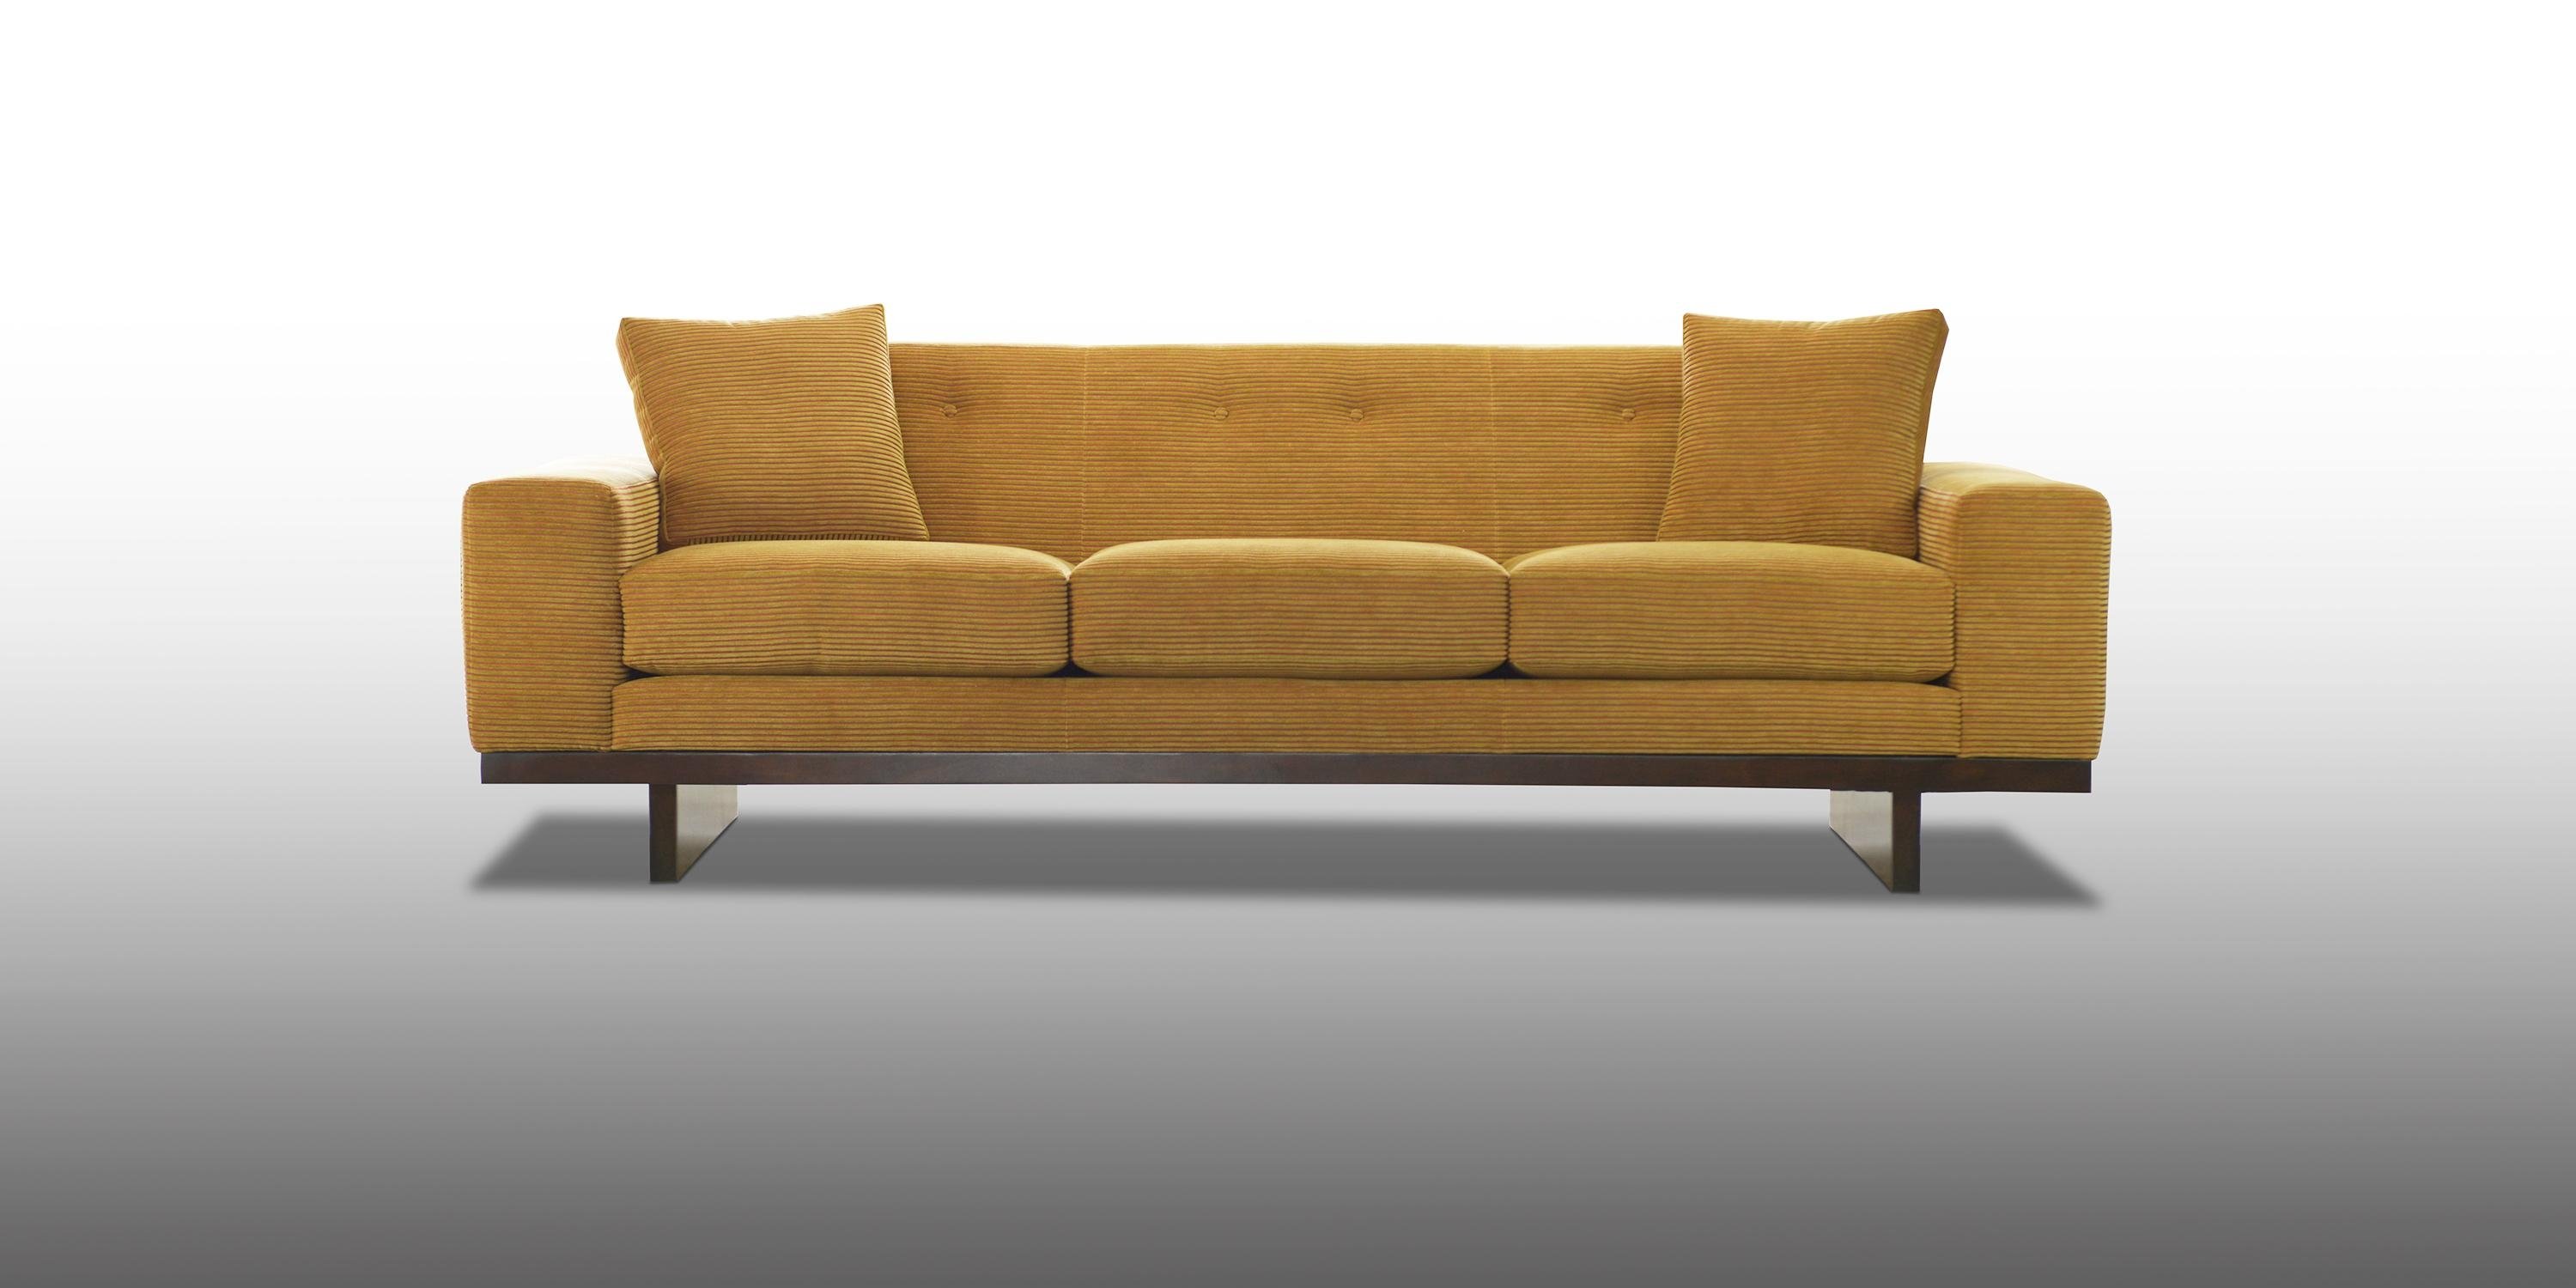 Sofas Archives – Nathan Anthony Furniture Within Nathan Anthony Sofas (Image 16 of 20)